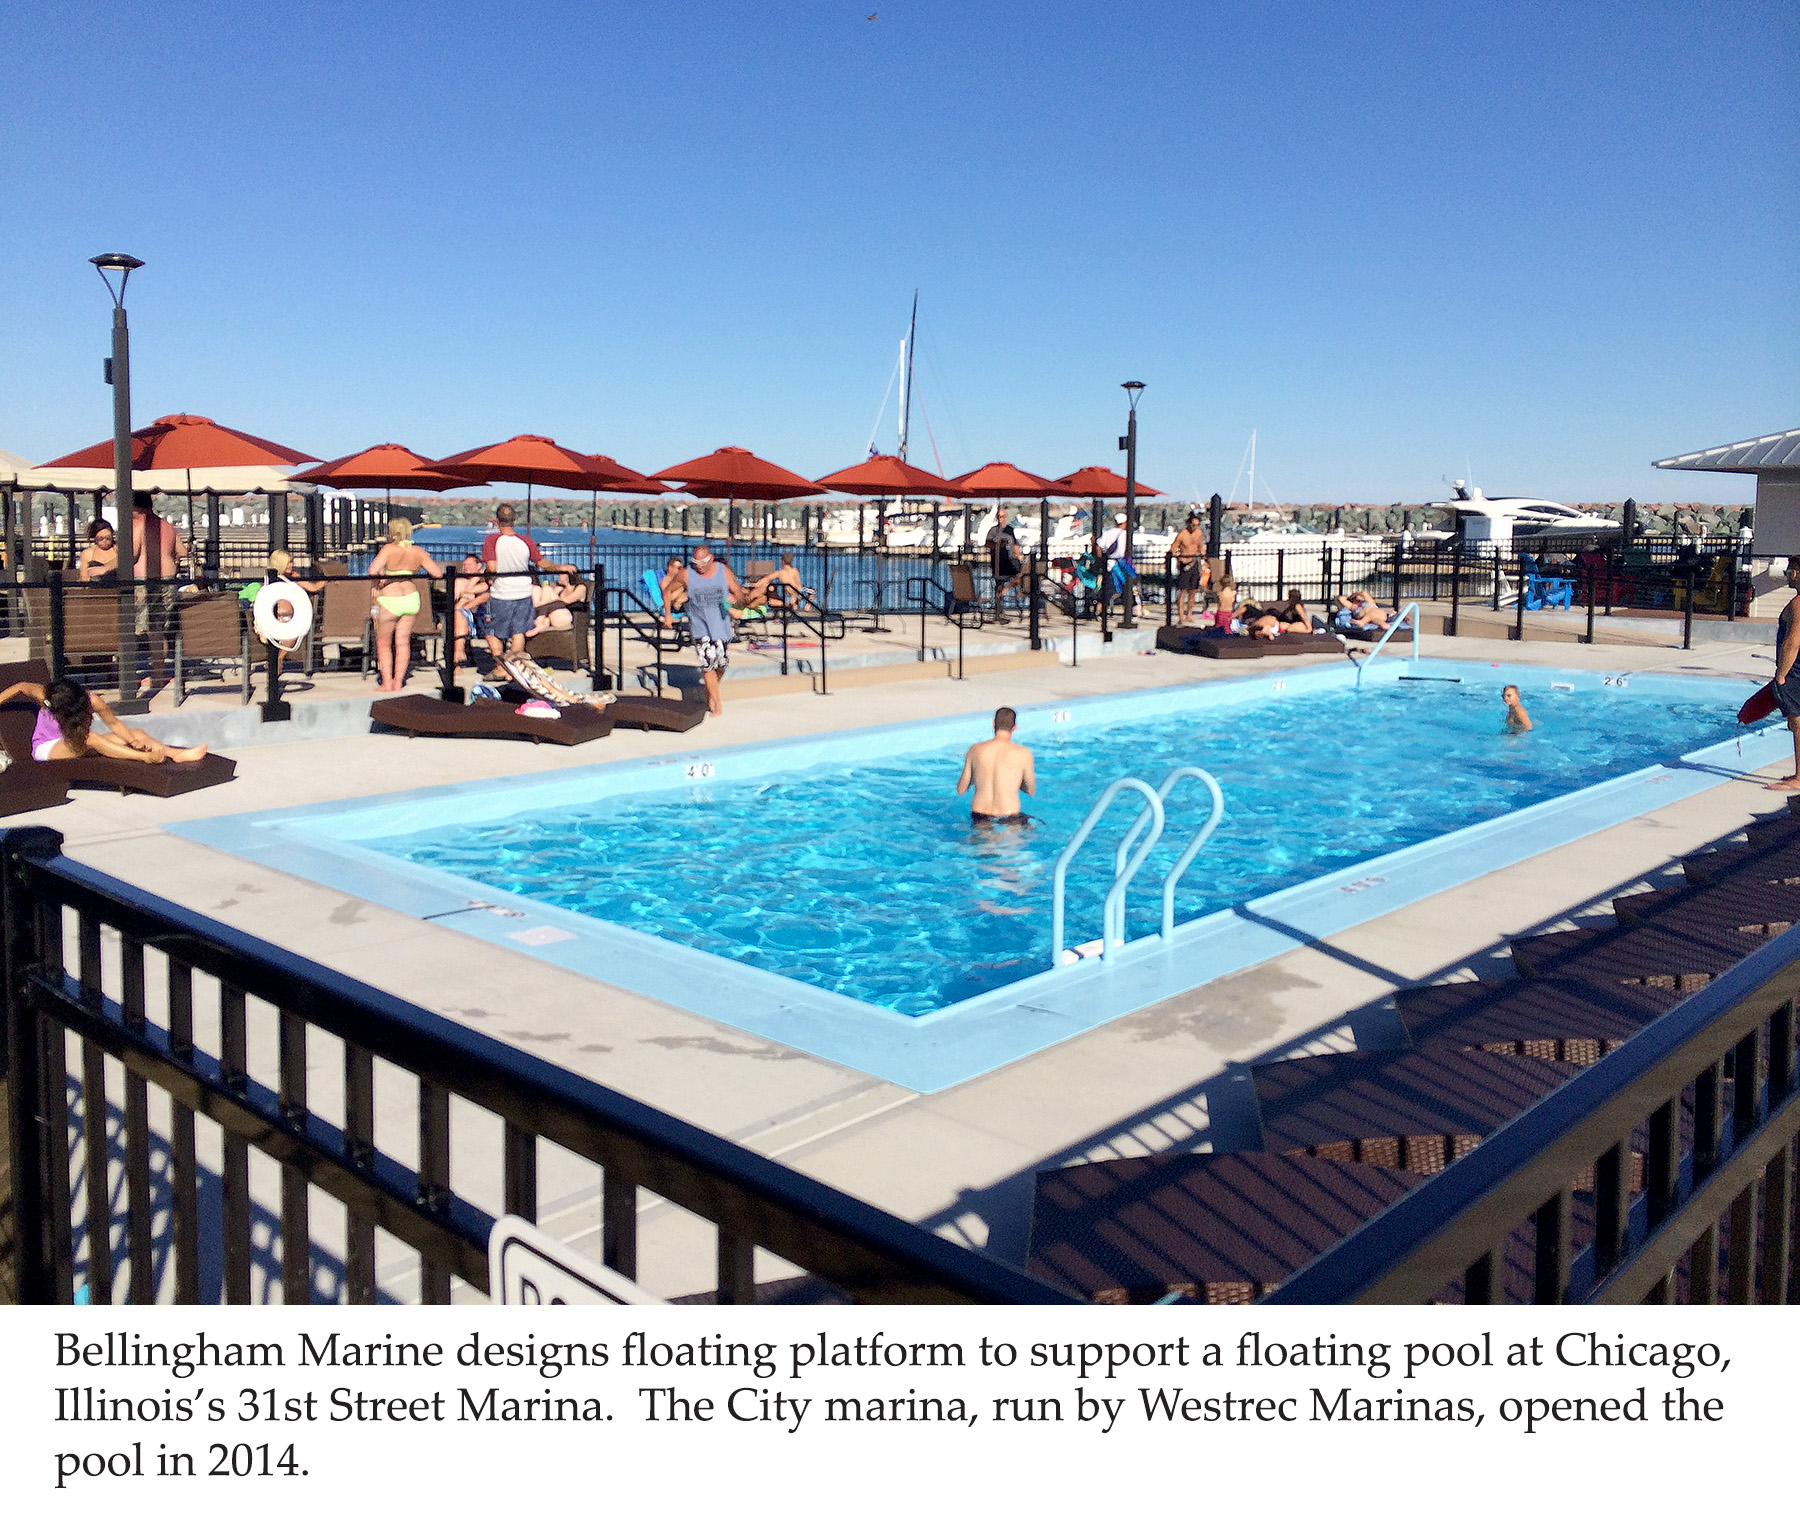 Bellingham Marine designs floating platfrom for floating pool